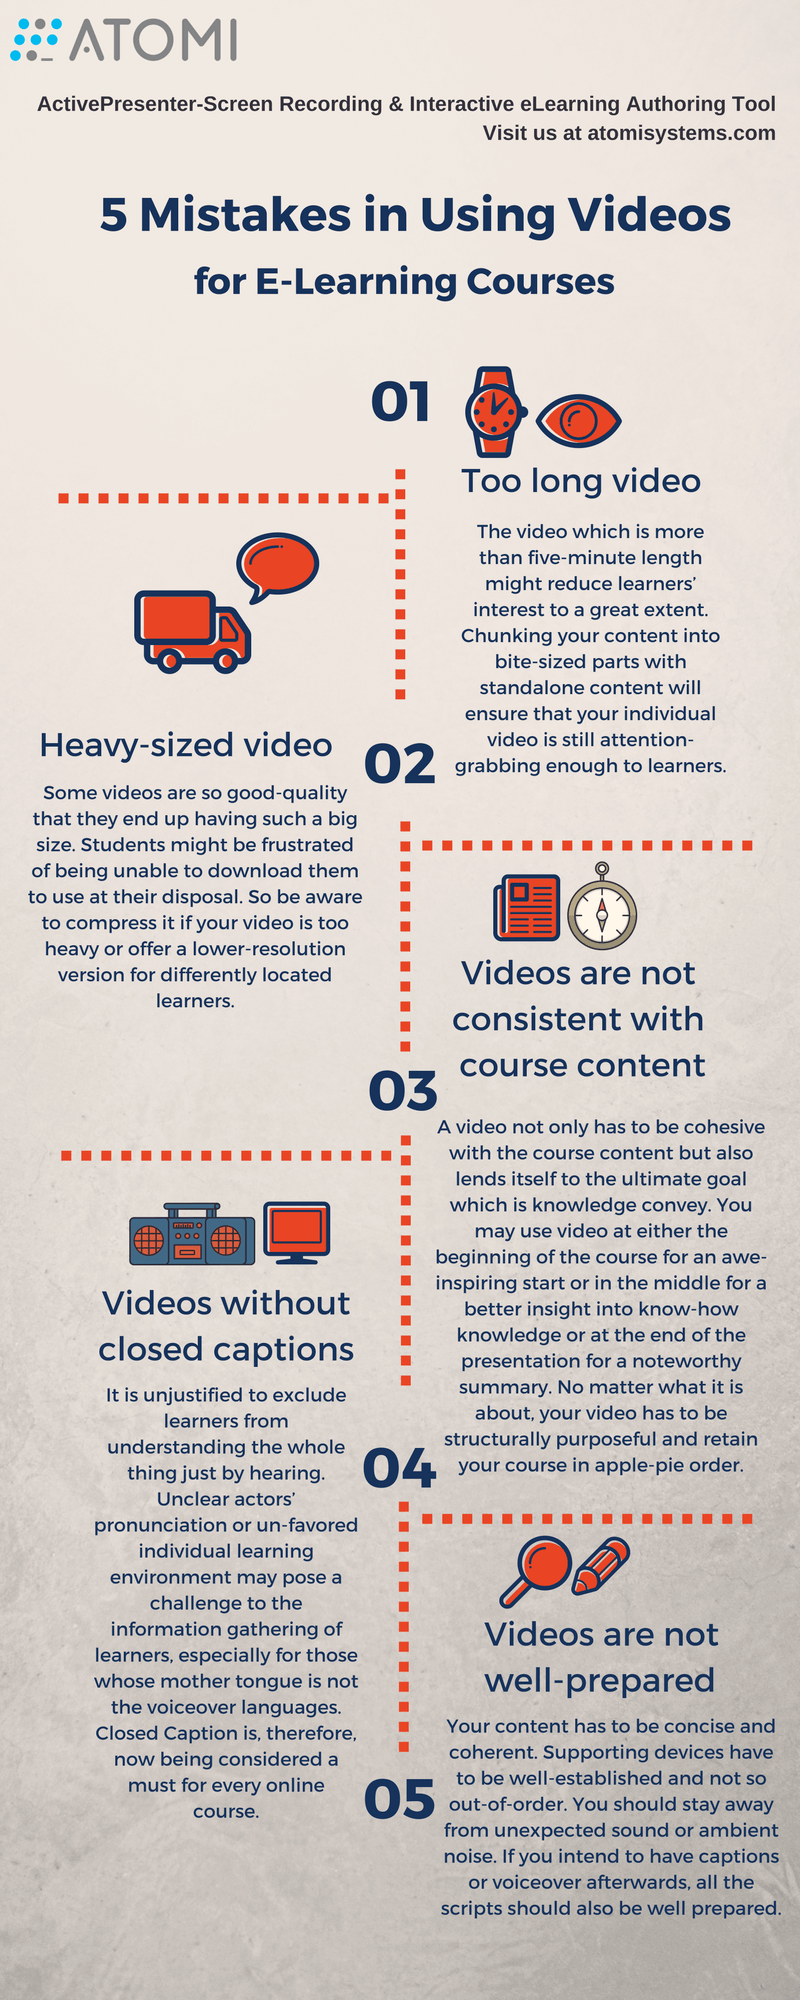 5 Mistakes in Using Videos for eLearning Courses Infographic